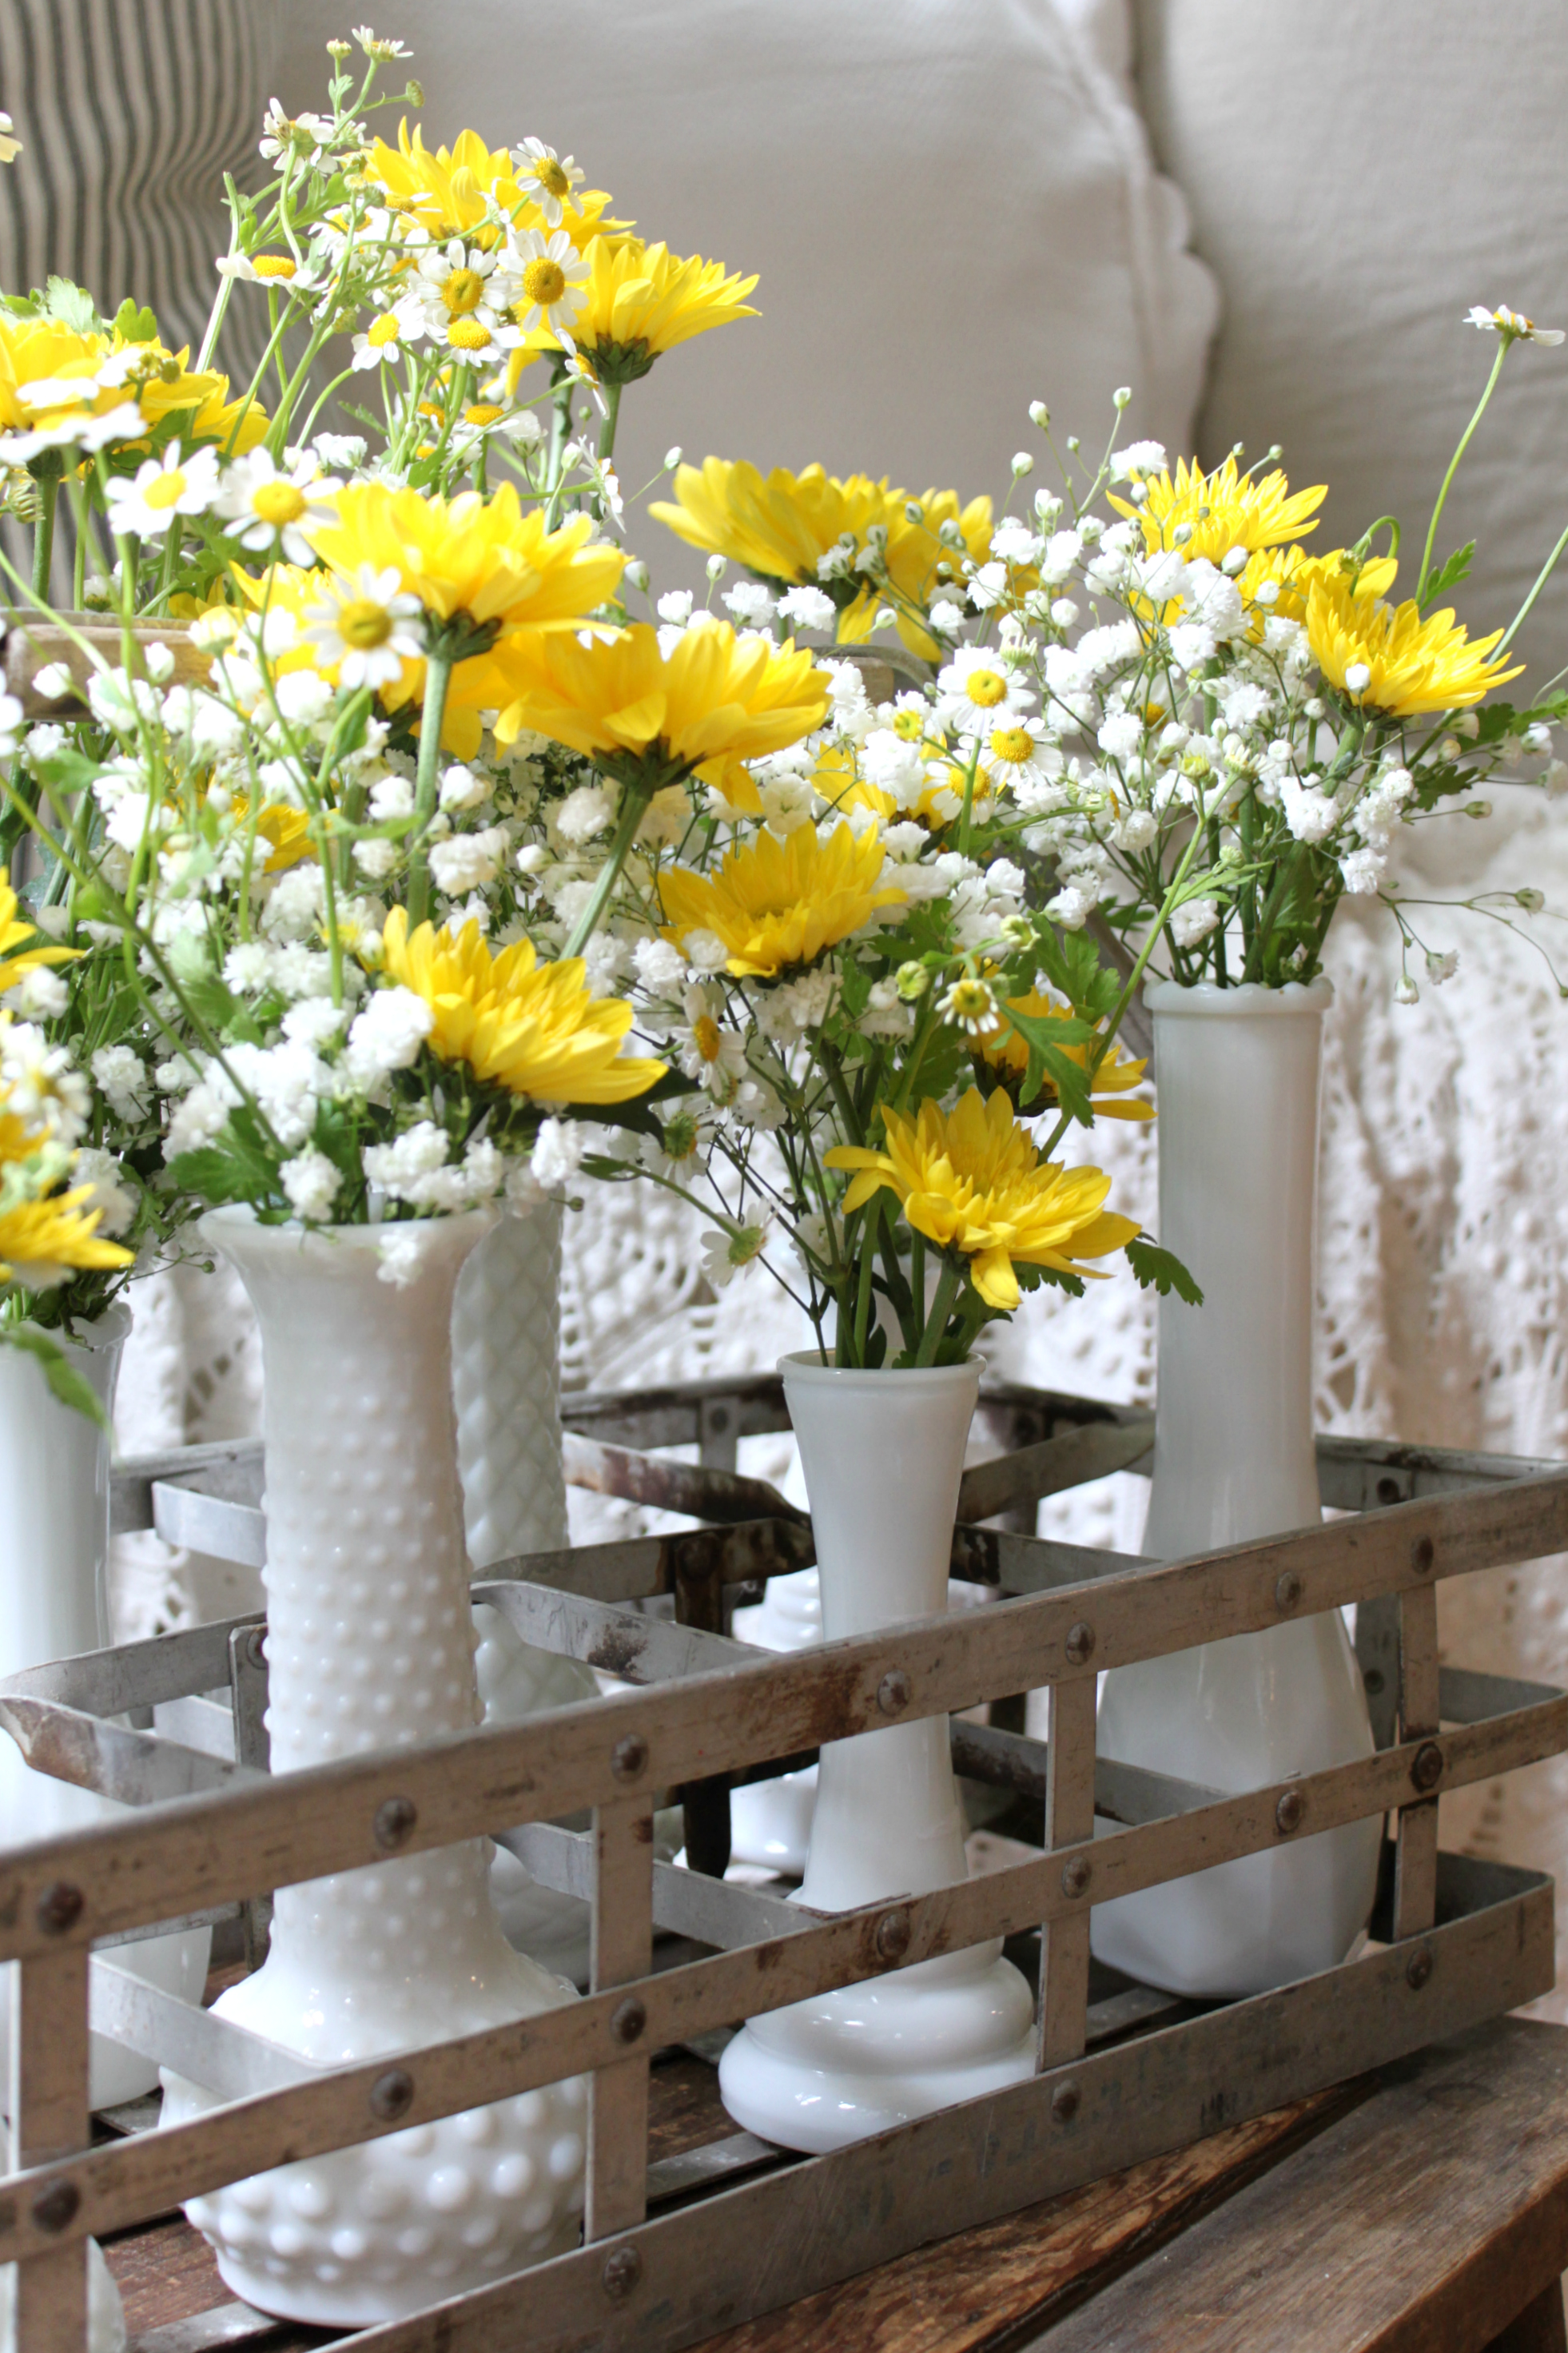 Milk glass vases milk bottle holder floral arrangement an i started by tucking the the babys breath into each vase followed by the yellow daisies at varying heights and then the white daisies to fill in any open mightylinksfo